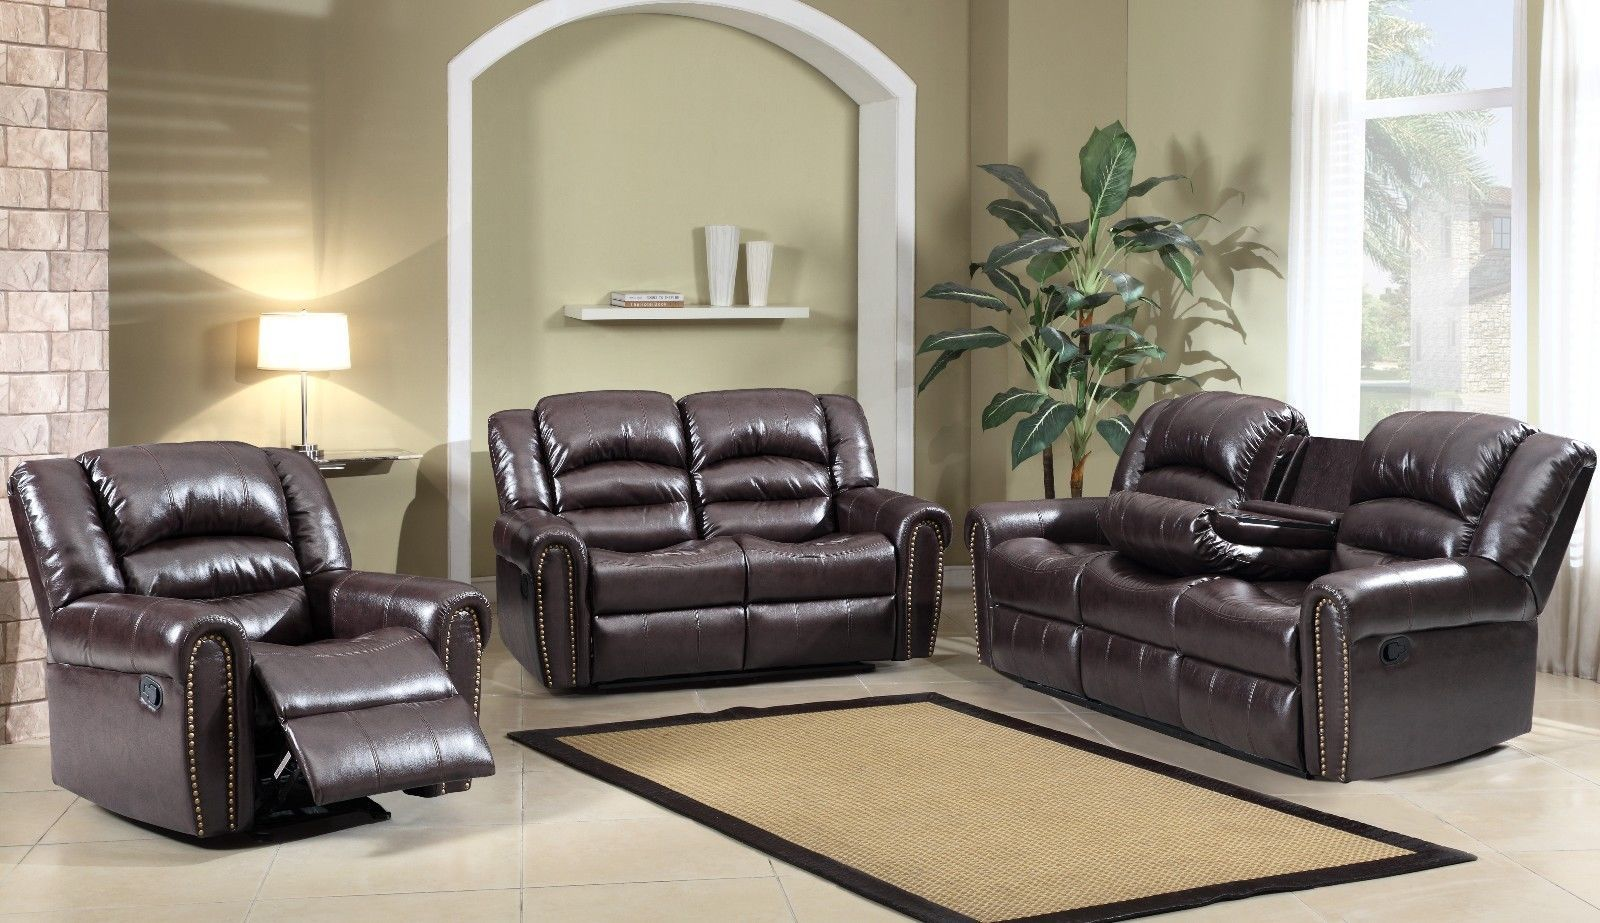 Meridian 684 Bonded Leather Living Room Sofa Reclining Brown Traditional Style